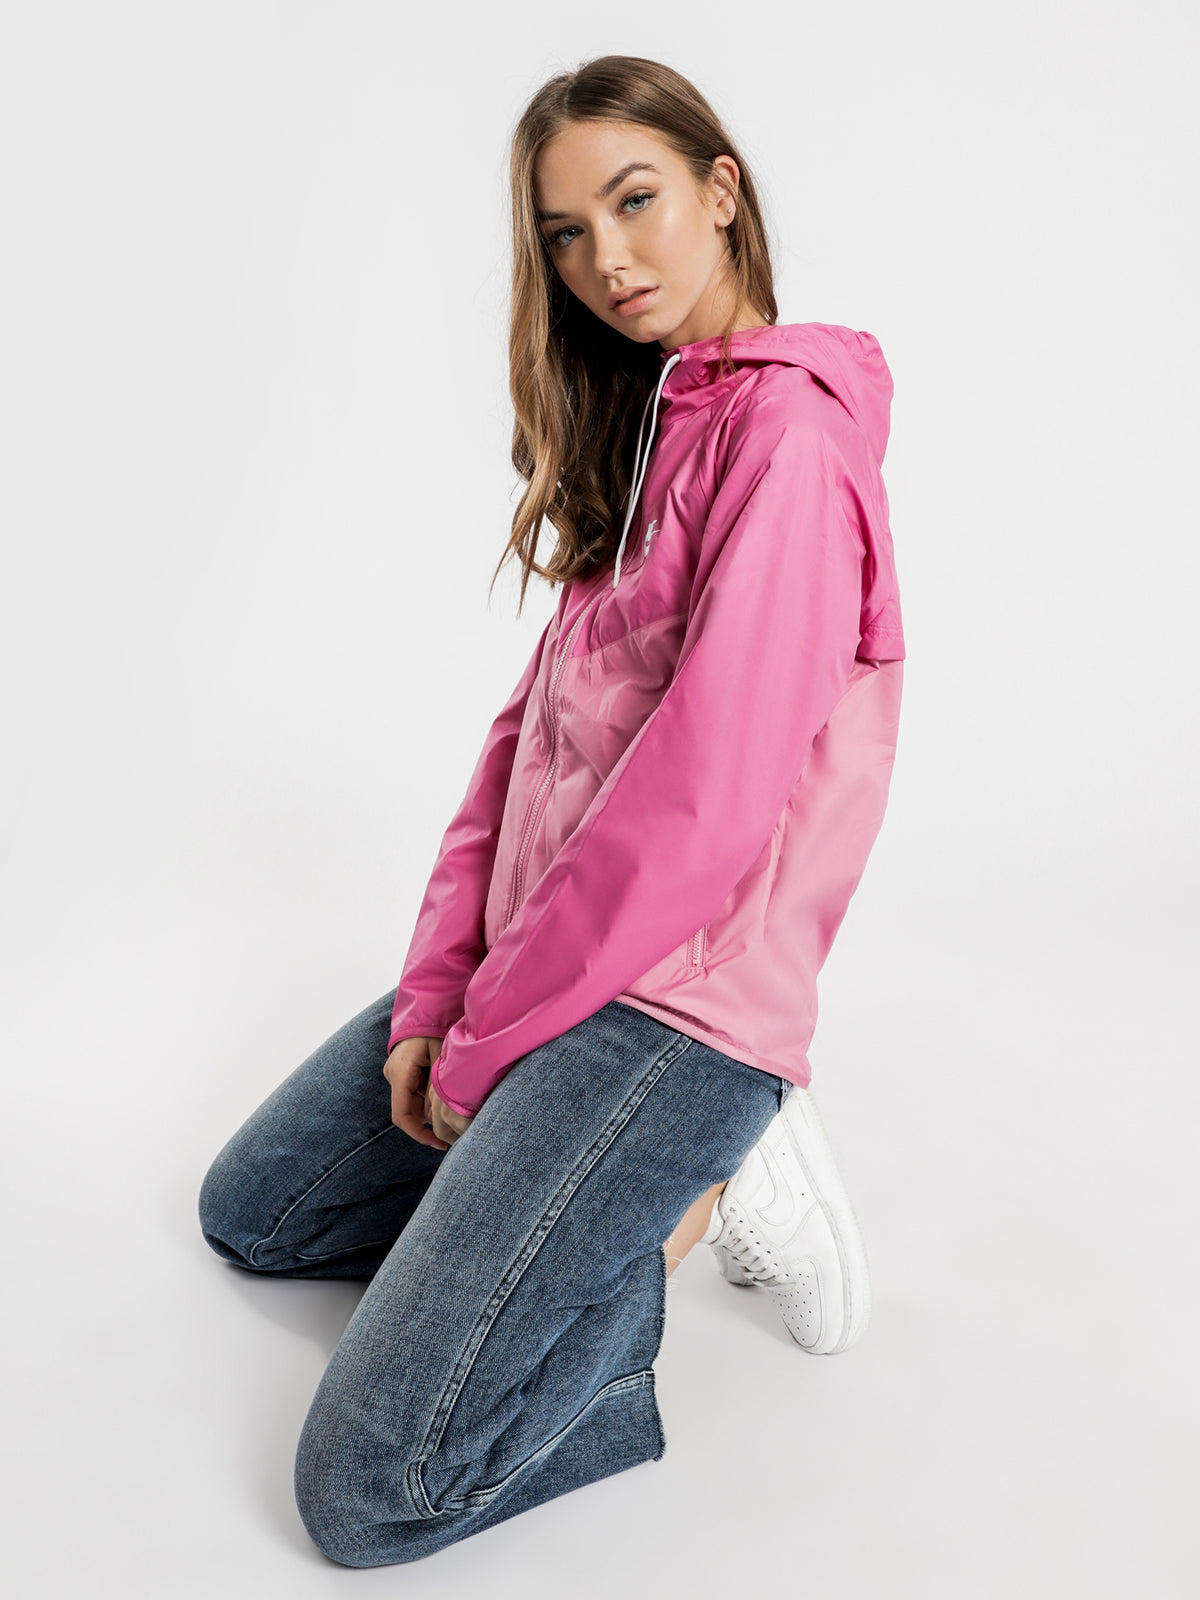 NSW Windrunner Jacket in Pink